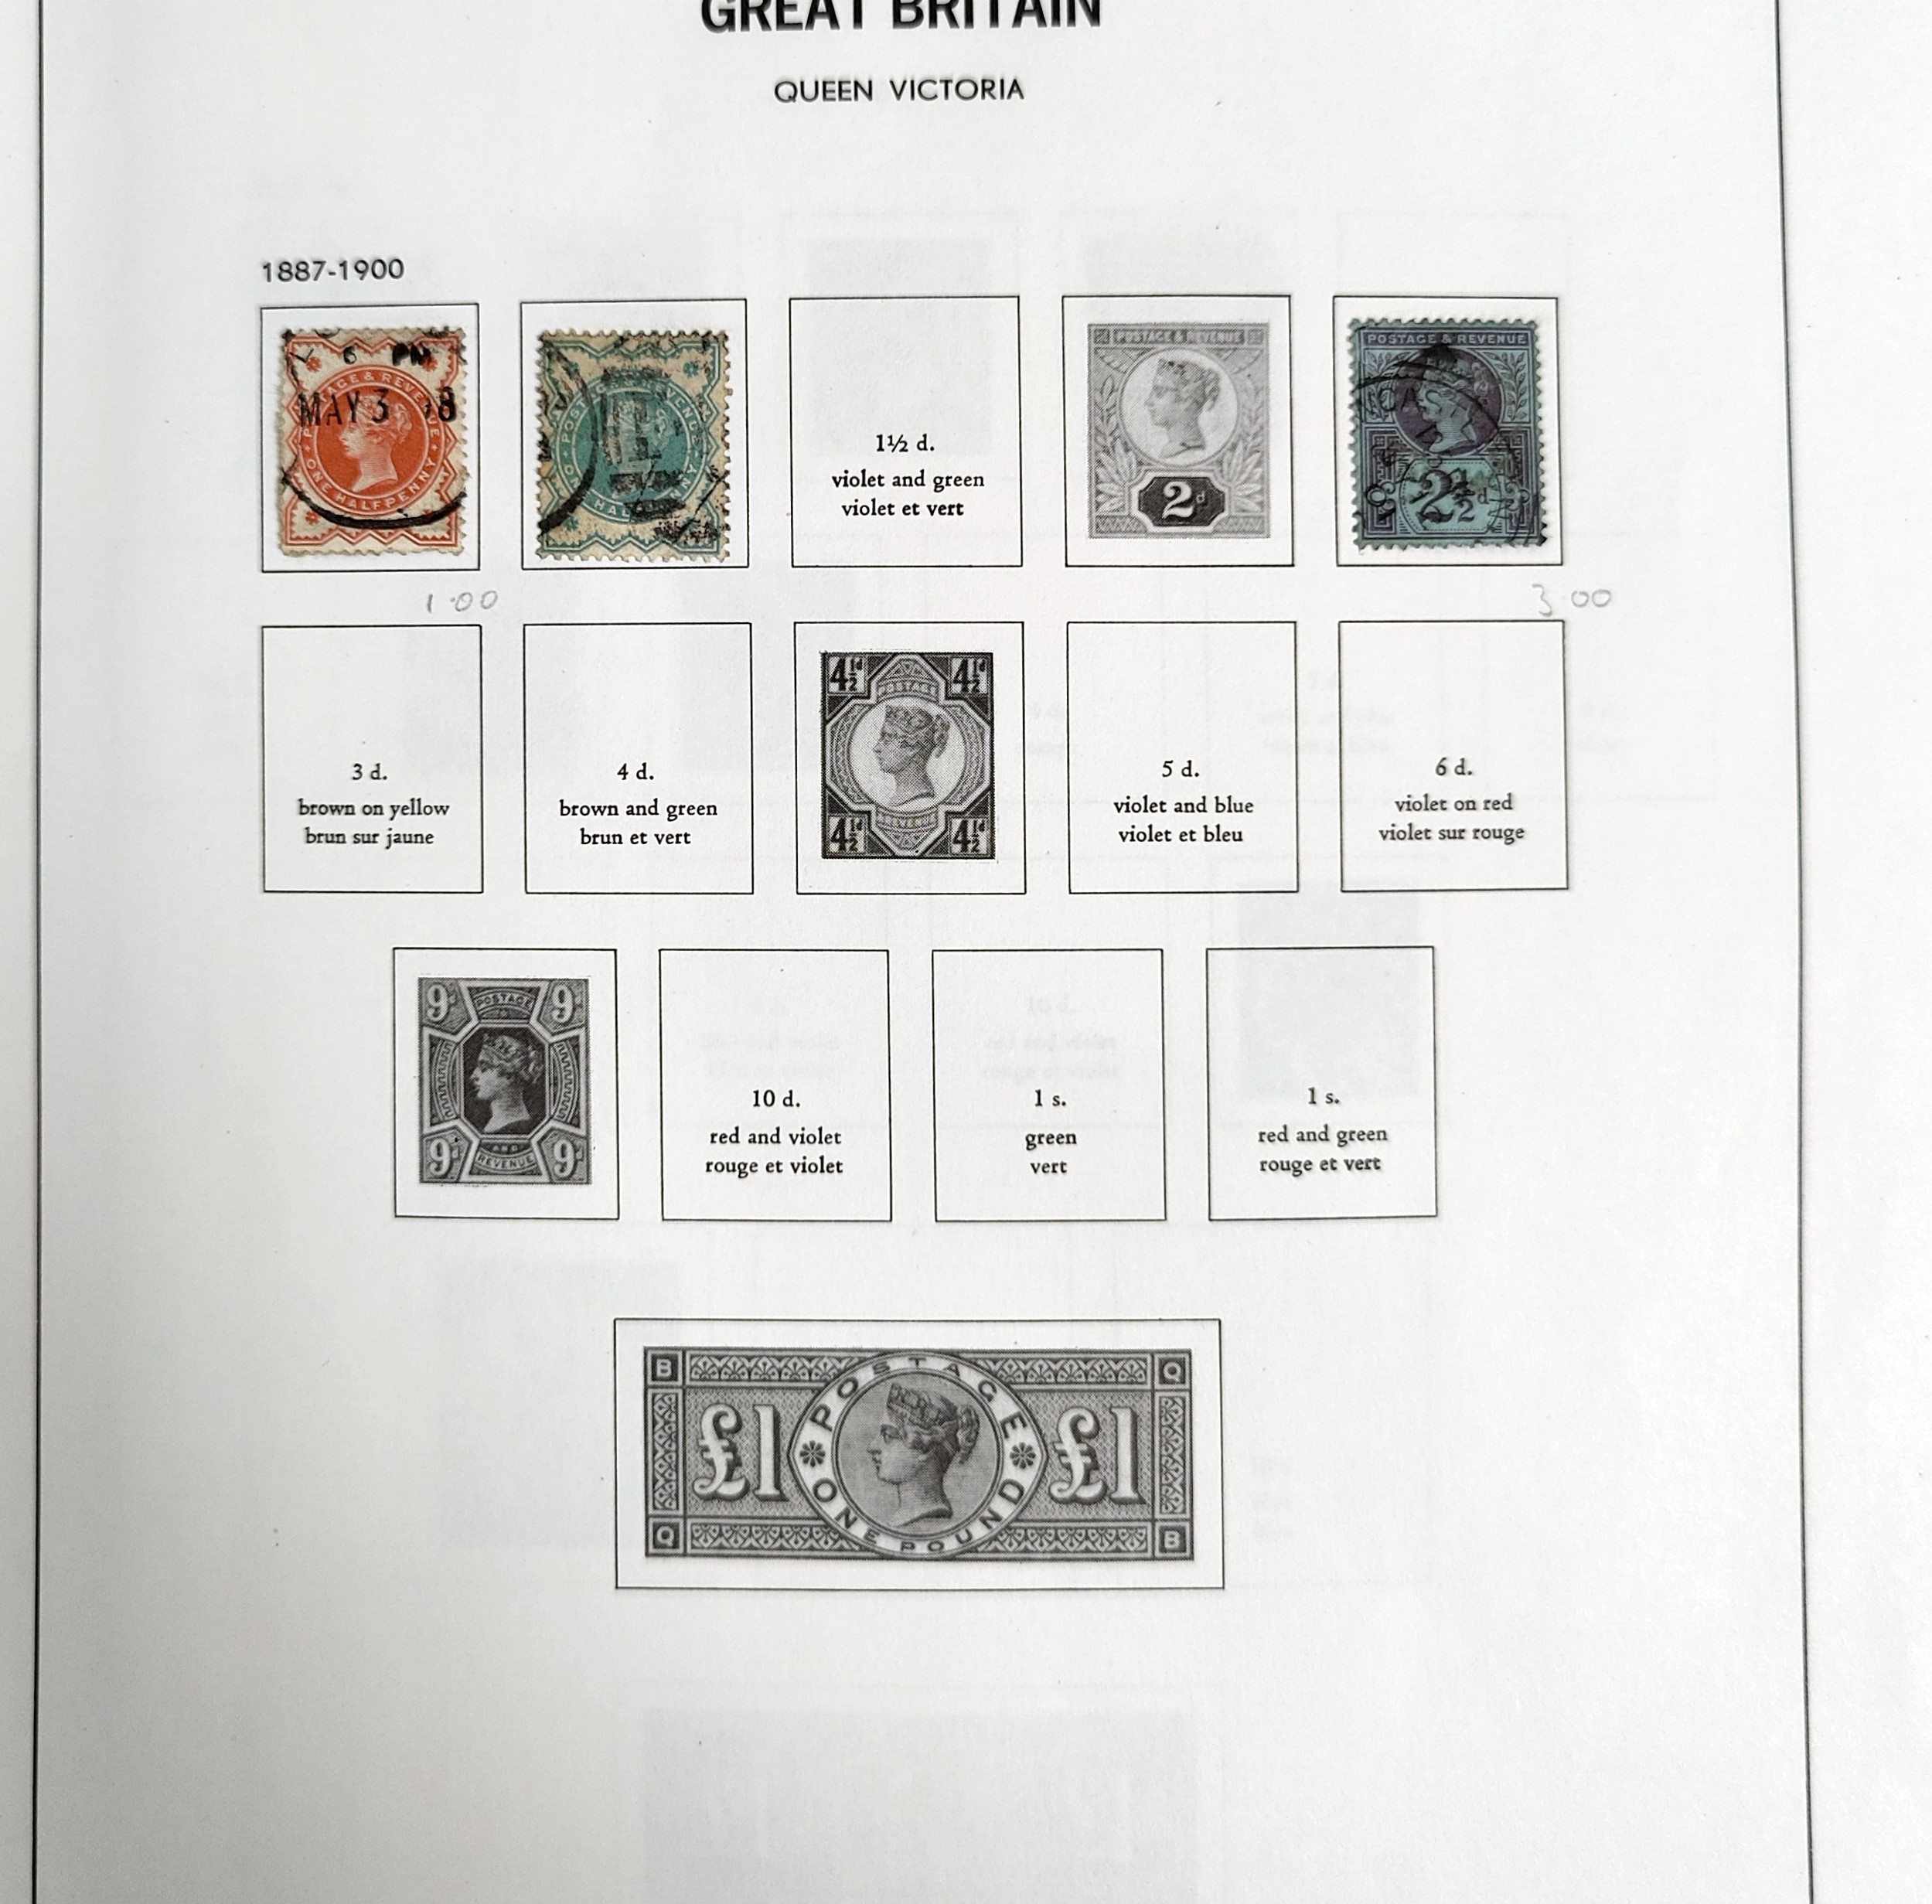 GB: A mounted mint collection of stamps, George V - QEII to include Empire Exhibition 1924/5, £1 - Image 2 of 5